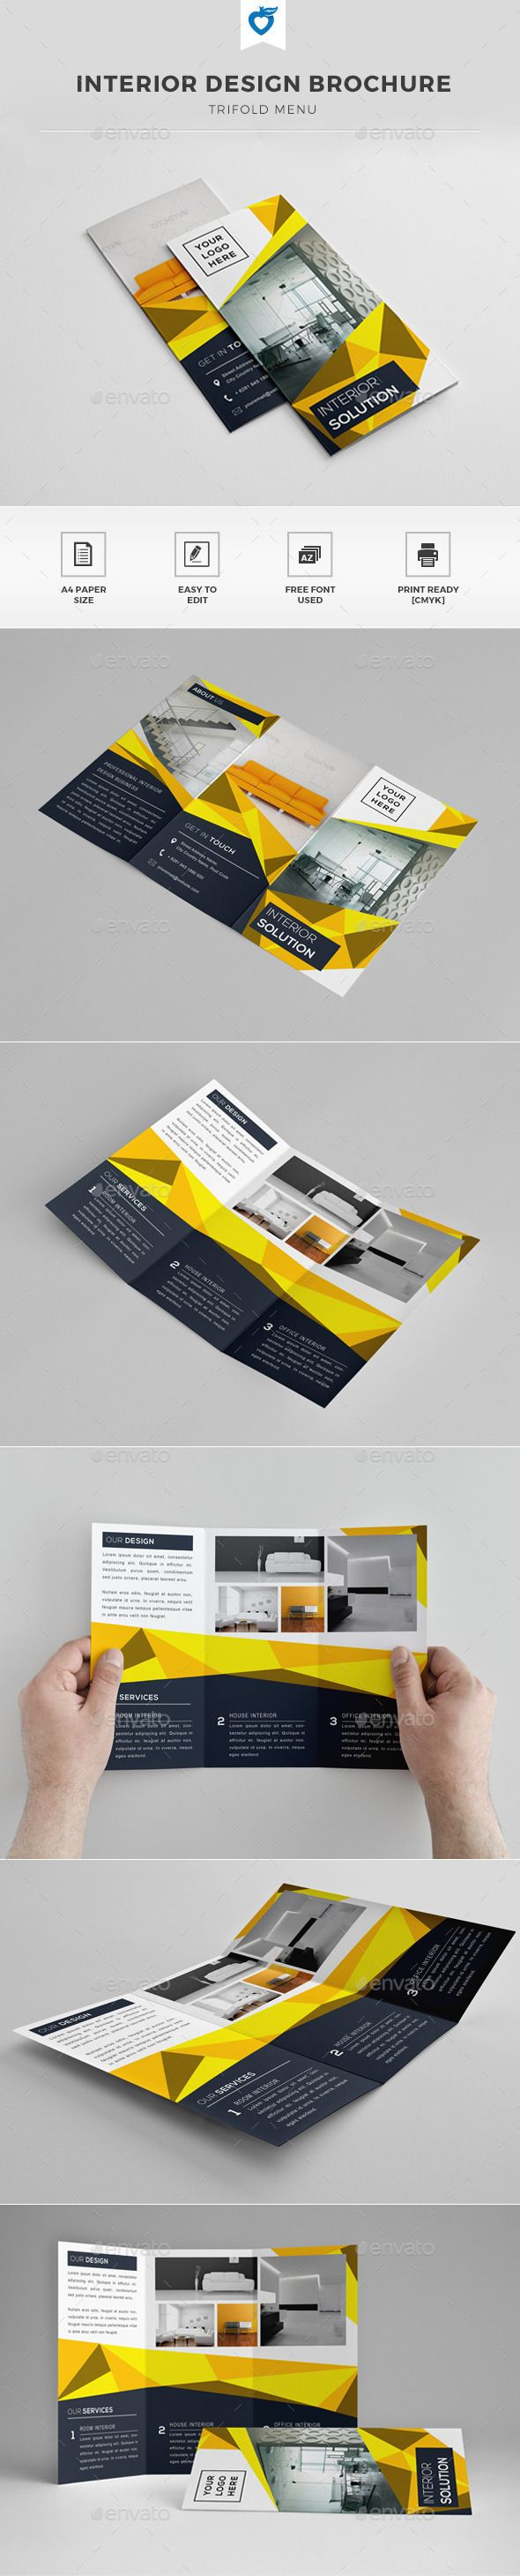 Interior Brochure — InDesign INDD #real estate #clean • Available here → https://graphicriver.net/item/interior-brochure/11940053?ref=pxcr